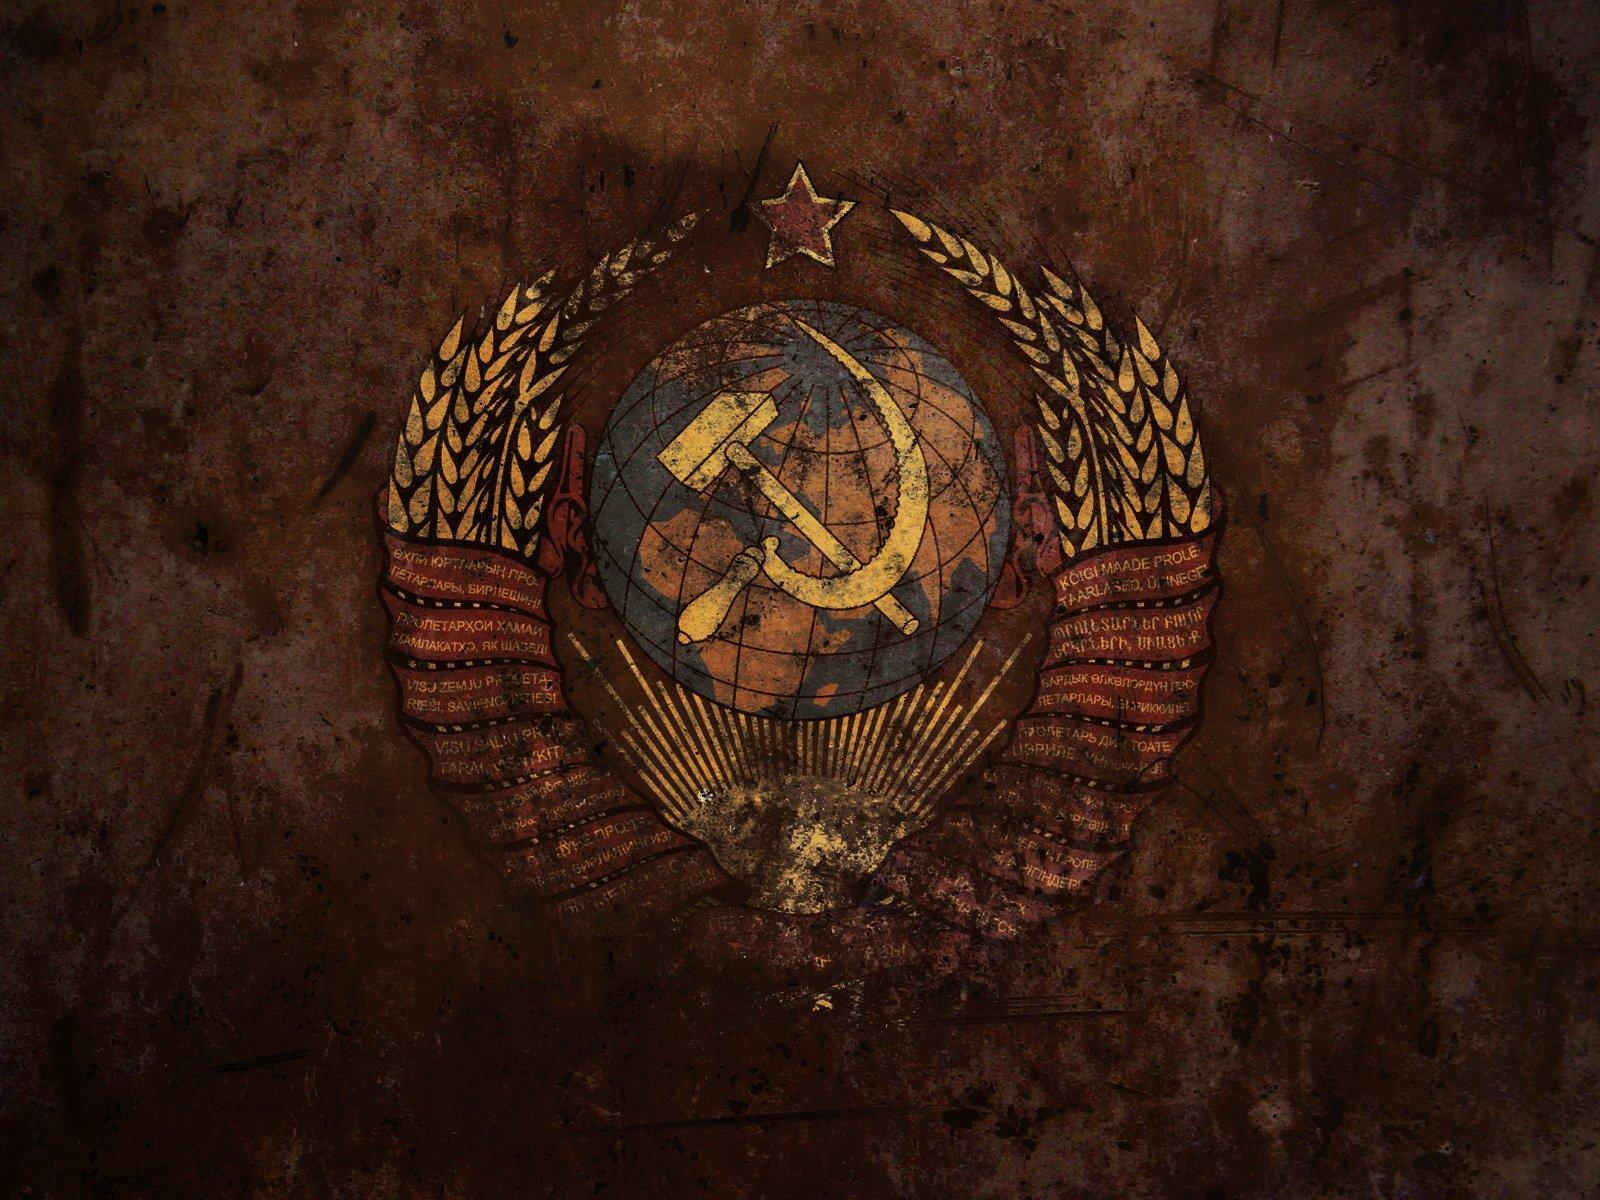 Ussr wallpapers wallpaper cave - Ussr wallpaper ...